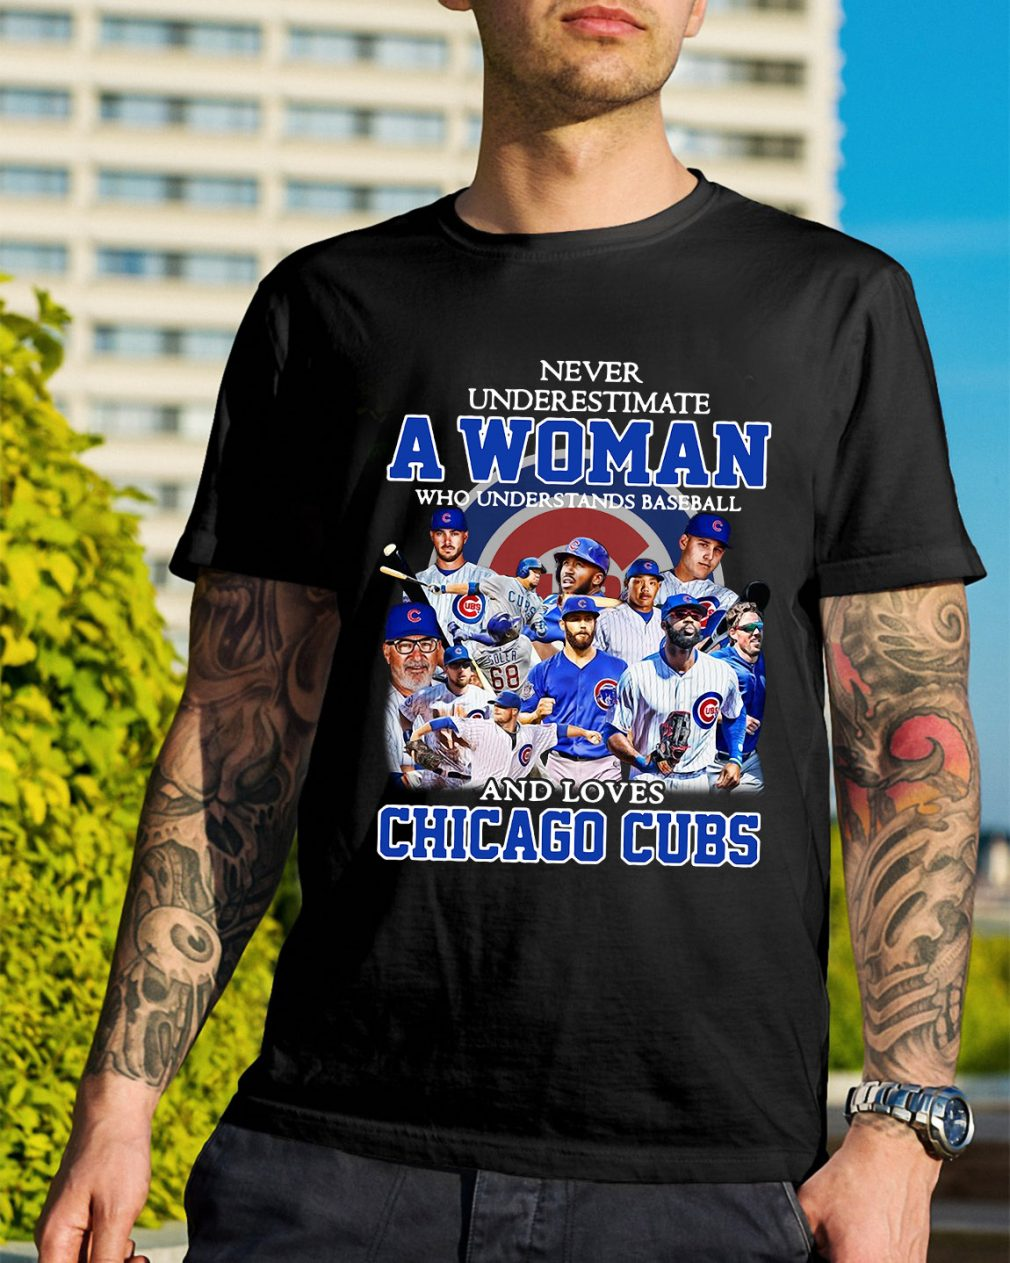 A woman who understands baseball and loves Chicago Cubs shirt